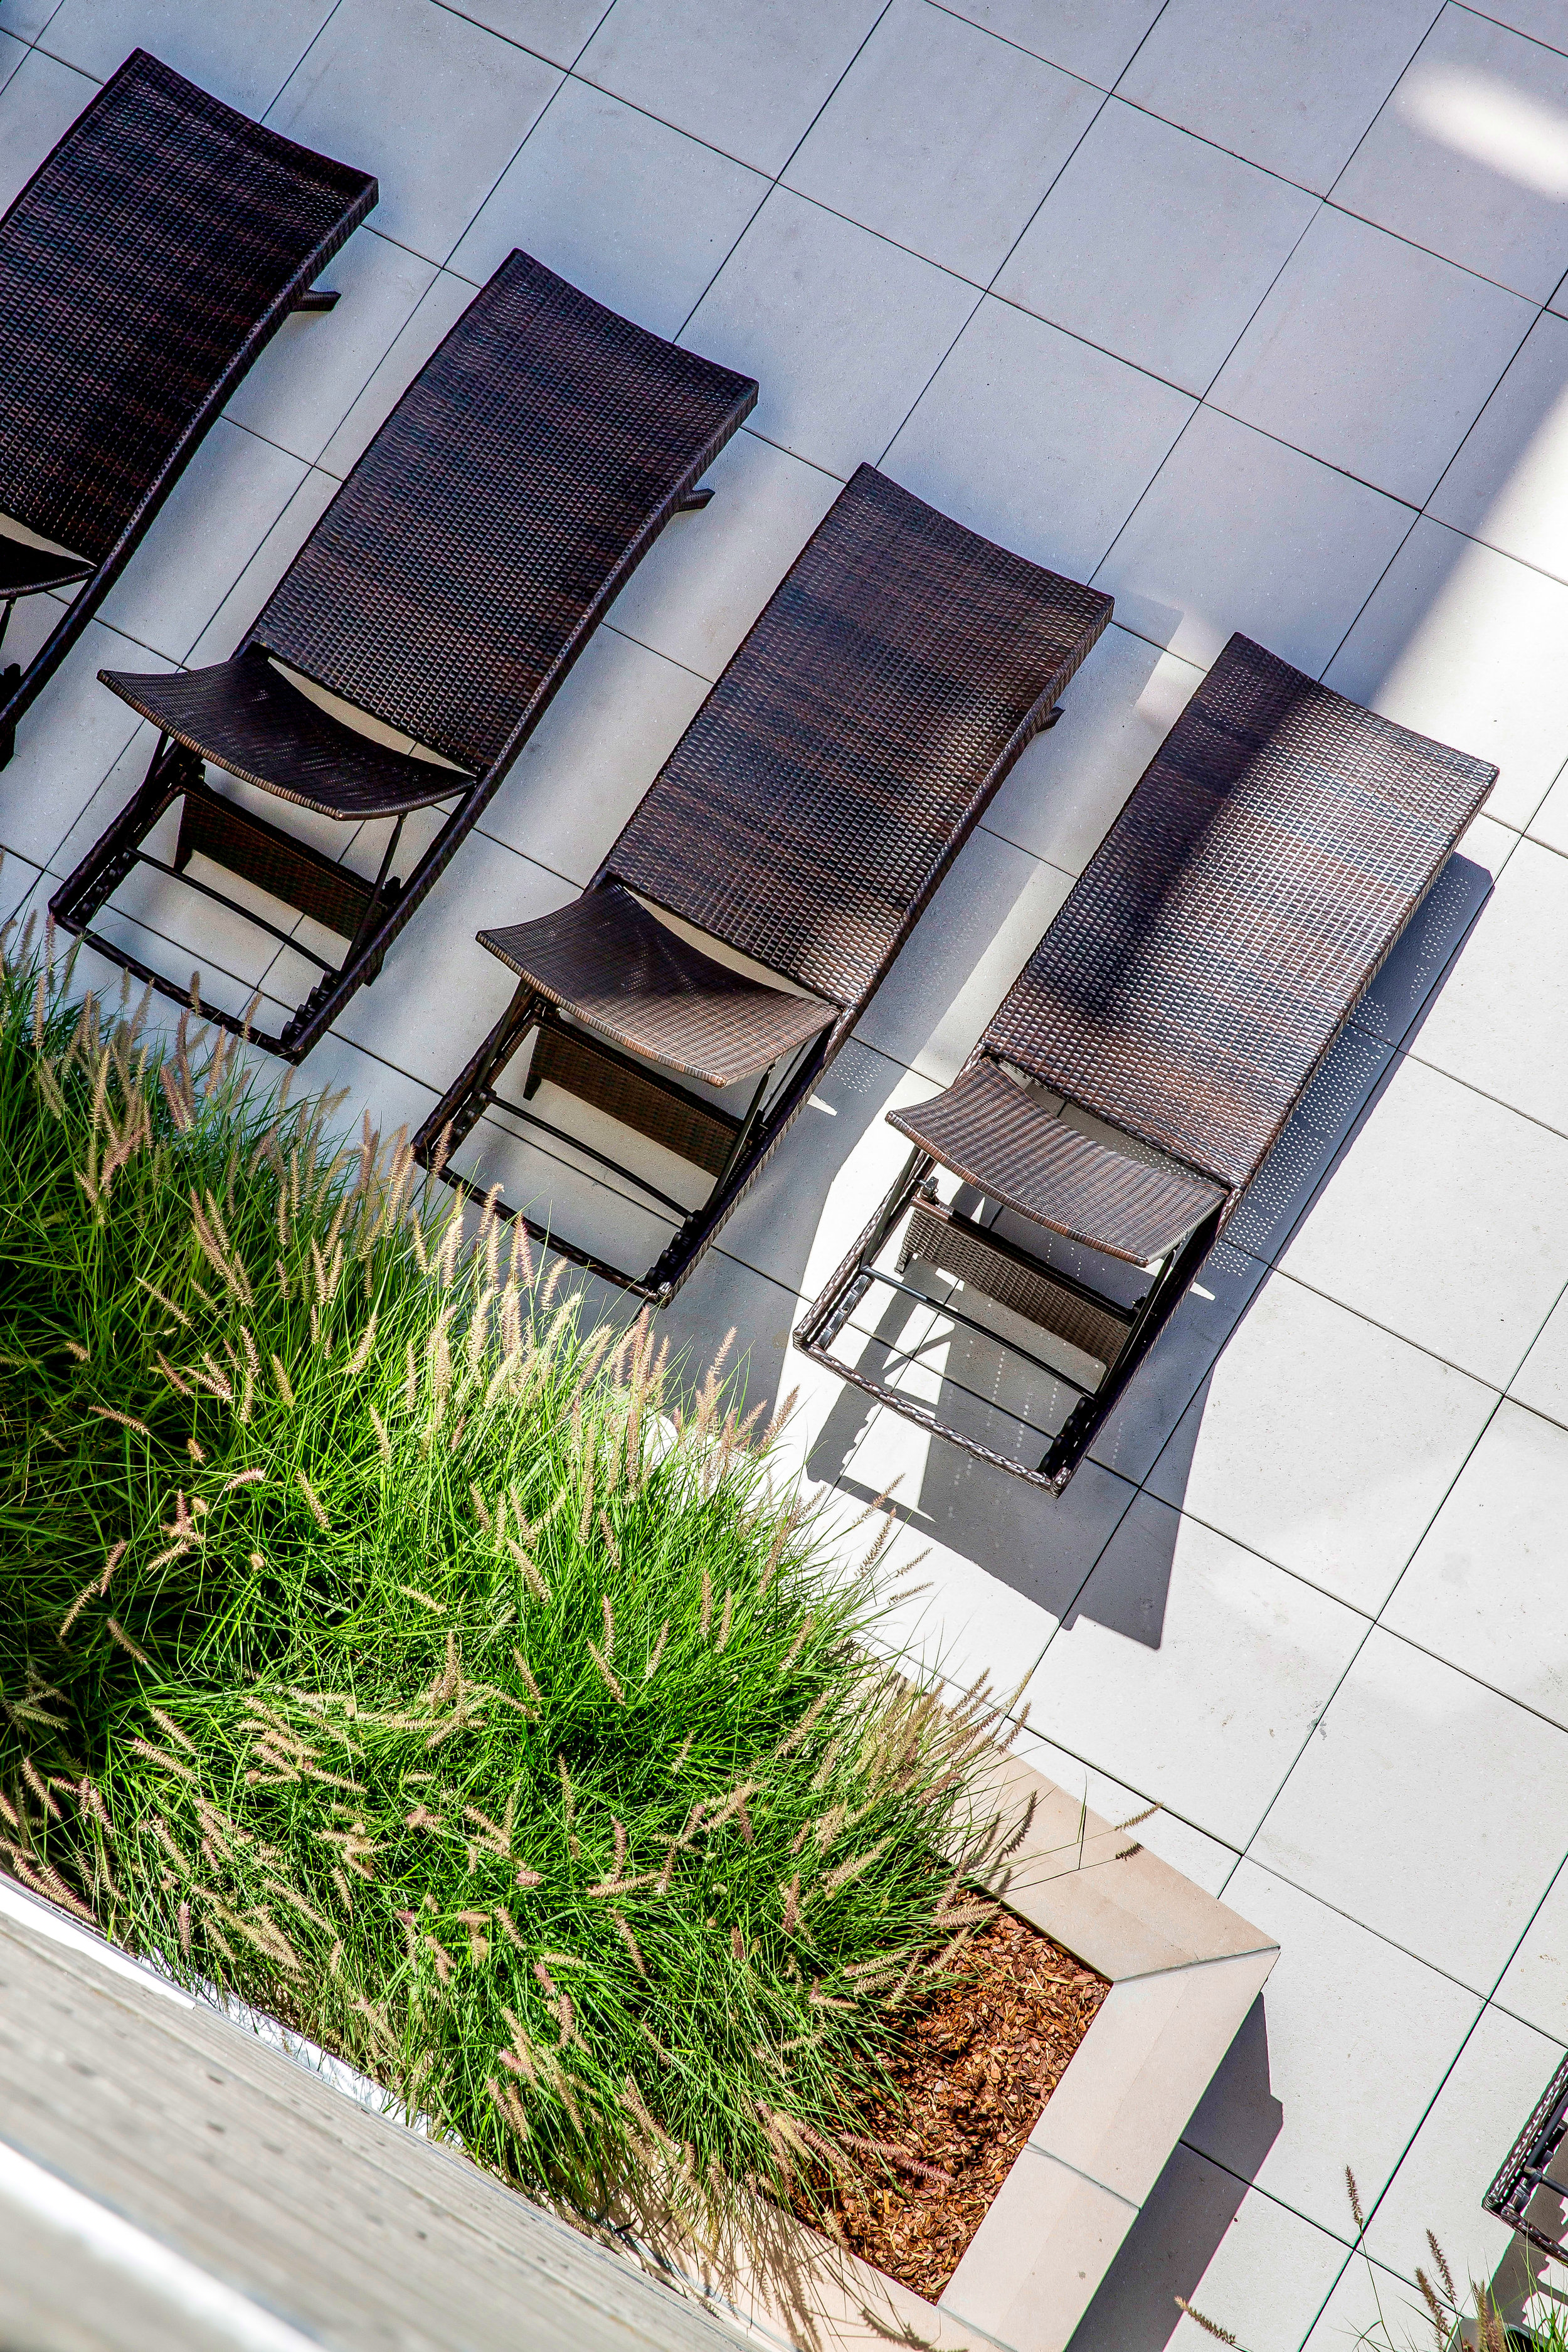 """<img src="""" studioINSITE_The_Verve_Courtyard """"alt=""""Urban Living, Multifamily Courtyard, Amenity Deck, Fire Pit, Grill Area, Shade Structure, Outdoor Garden,  Landscape Architecture, Luxury Living, the Douglas, Denver, CO, Colorado Courtyards, Amenity Spaces, Great Courtyard Designs"""" title=""""The Verve""""/>"""